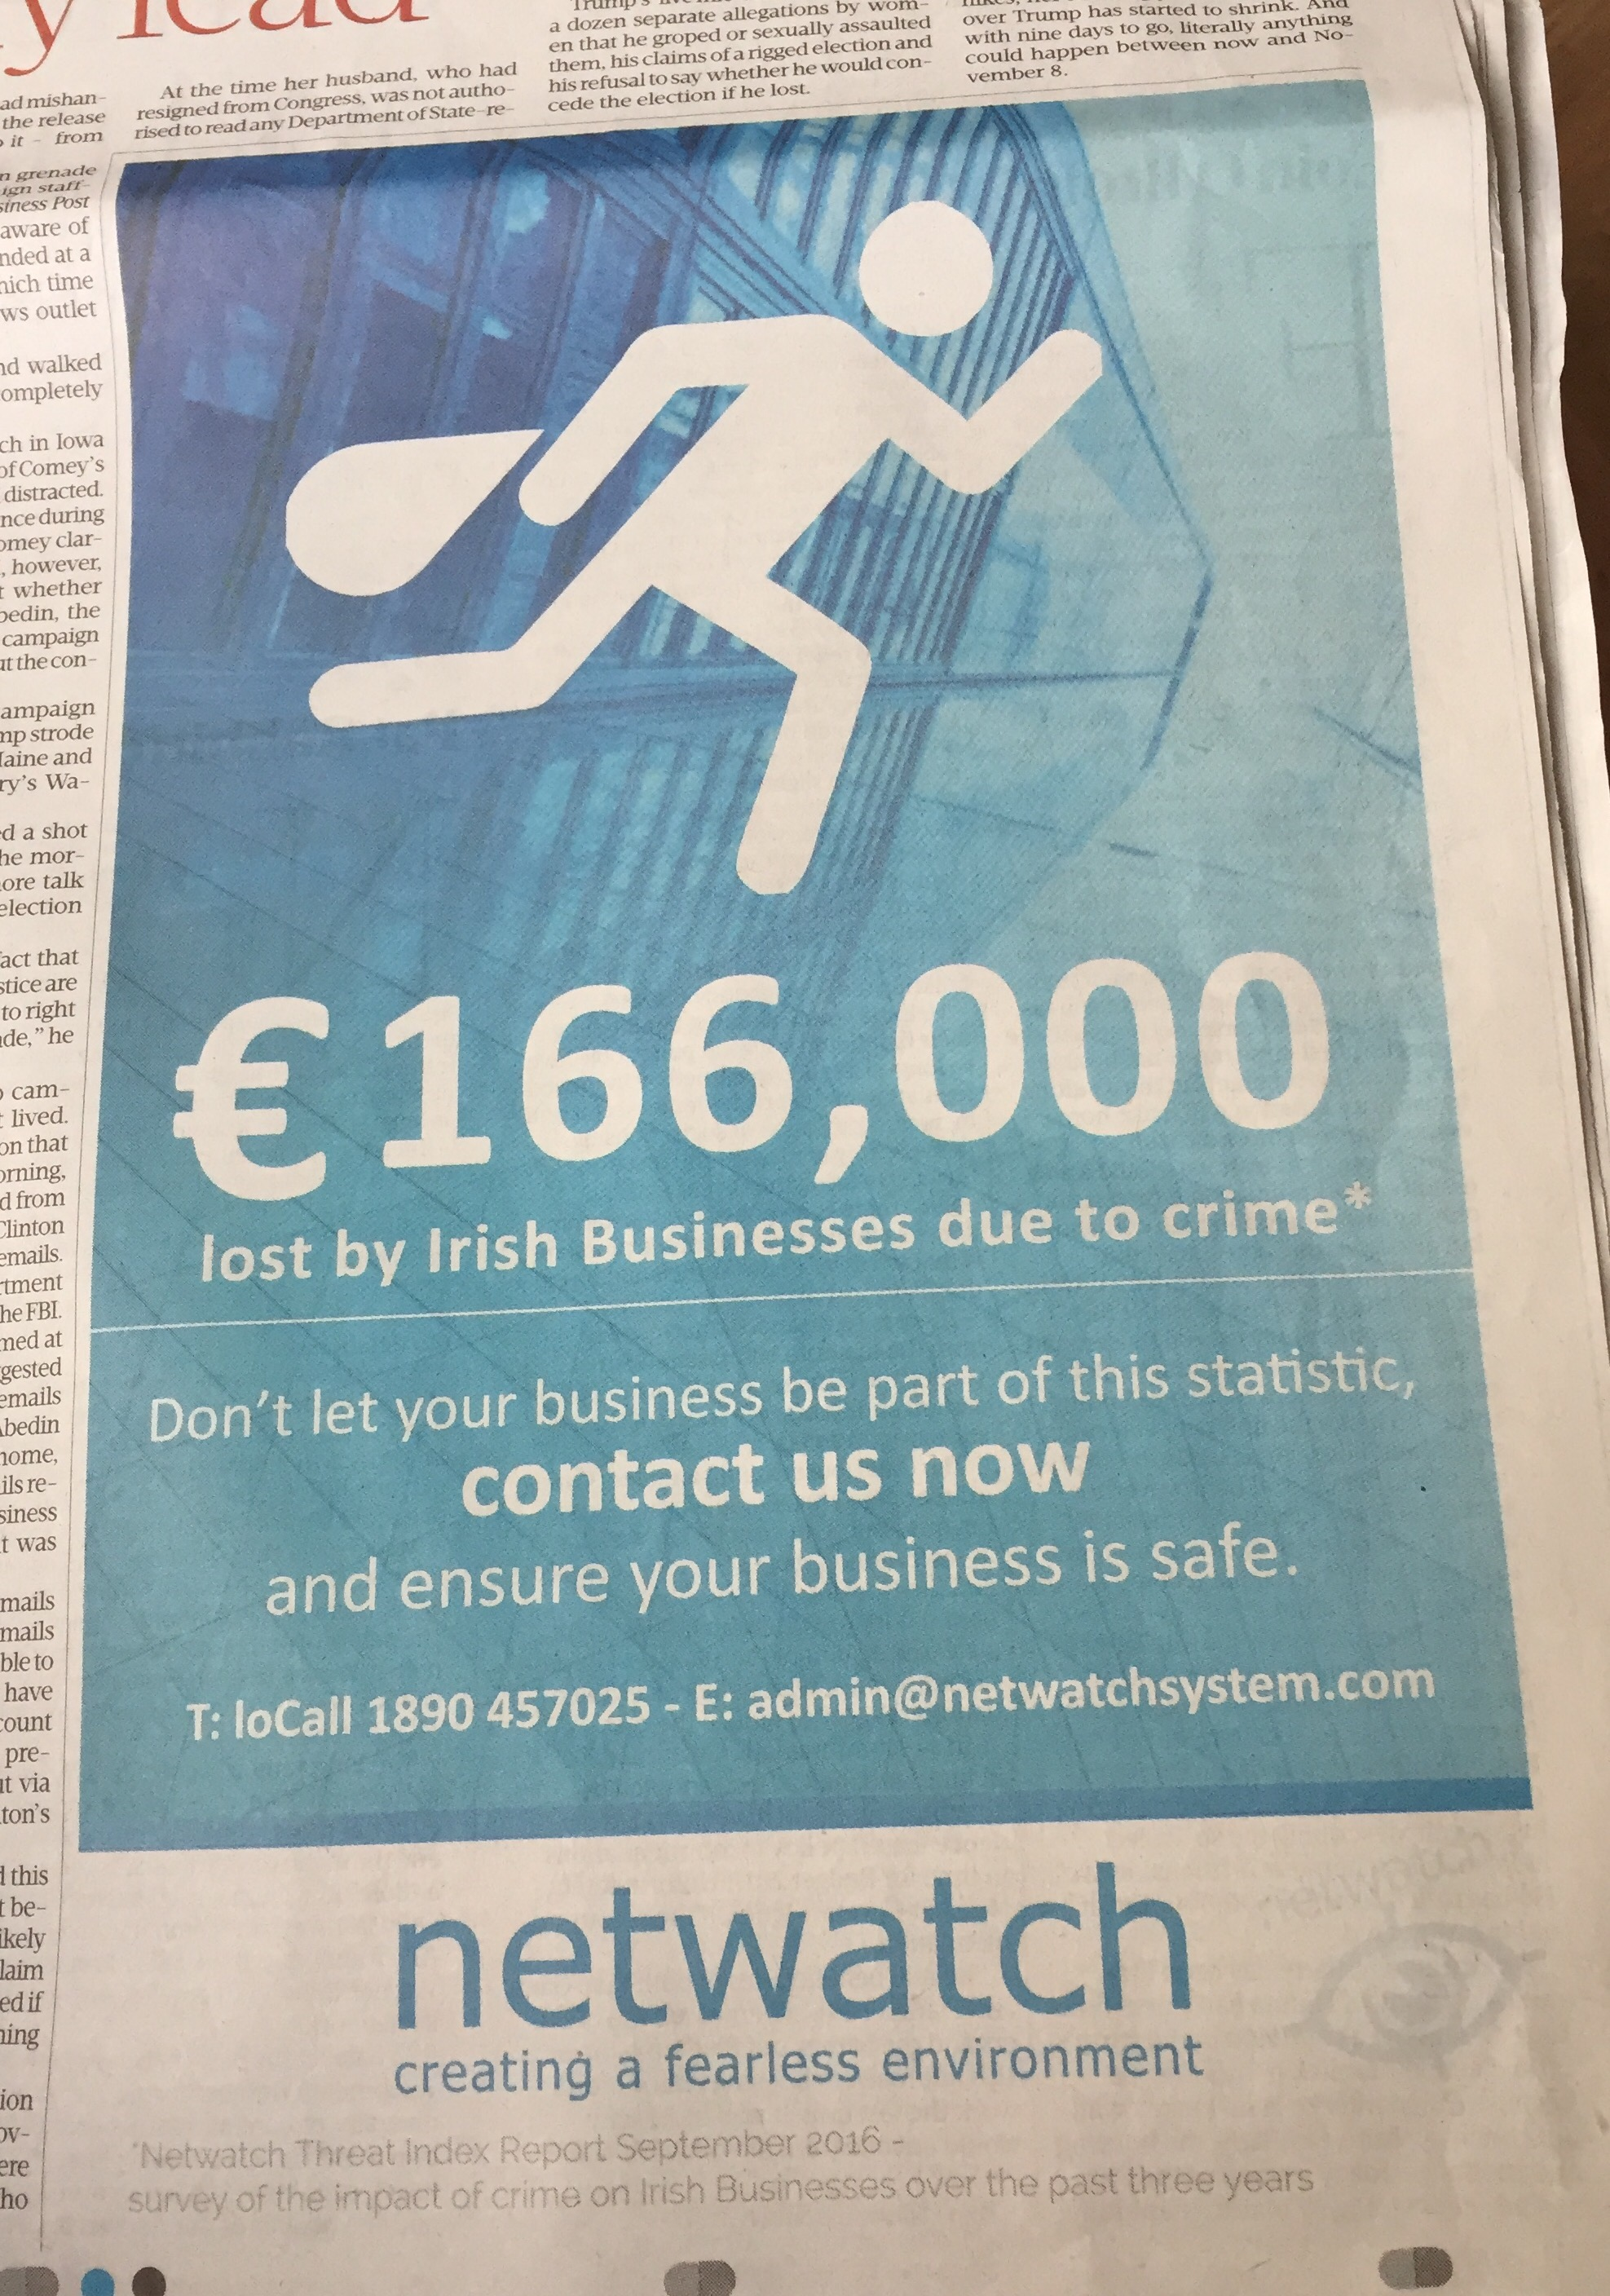 Netwatch – €166,000 lost by Irish businesses due to crime